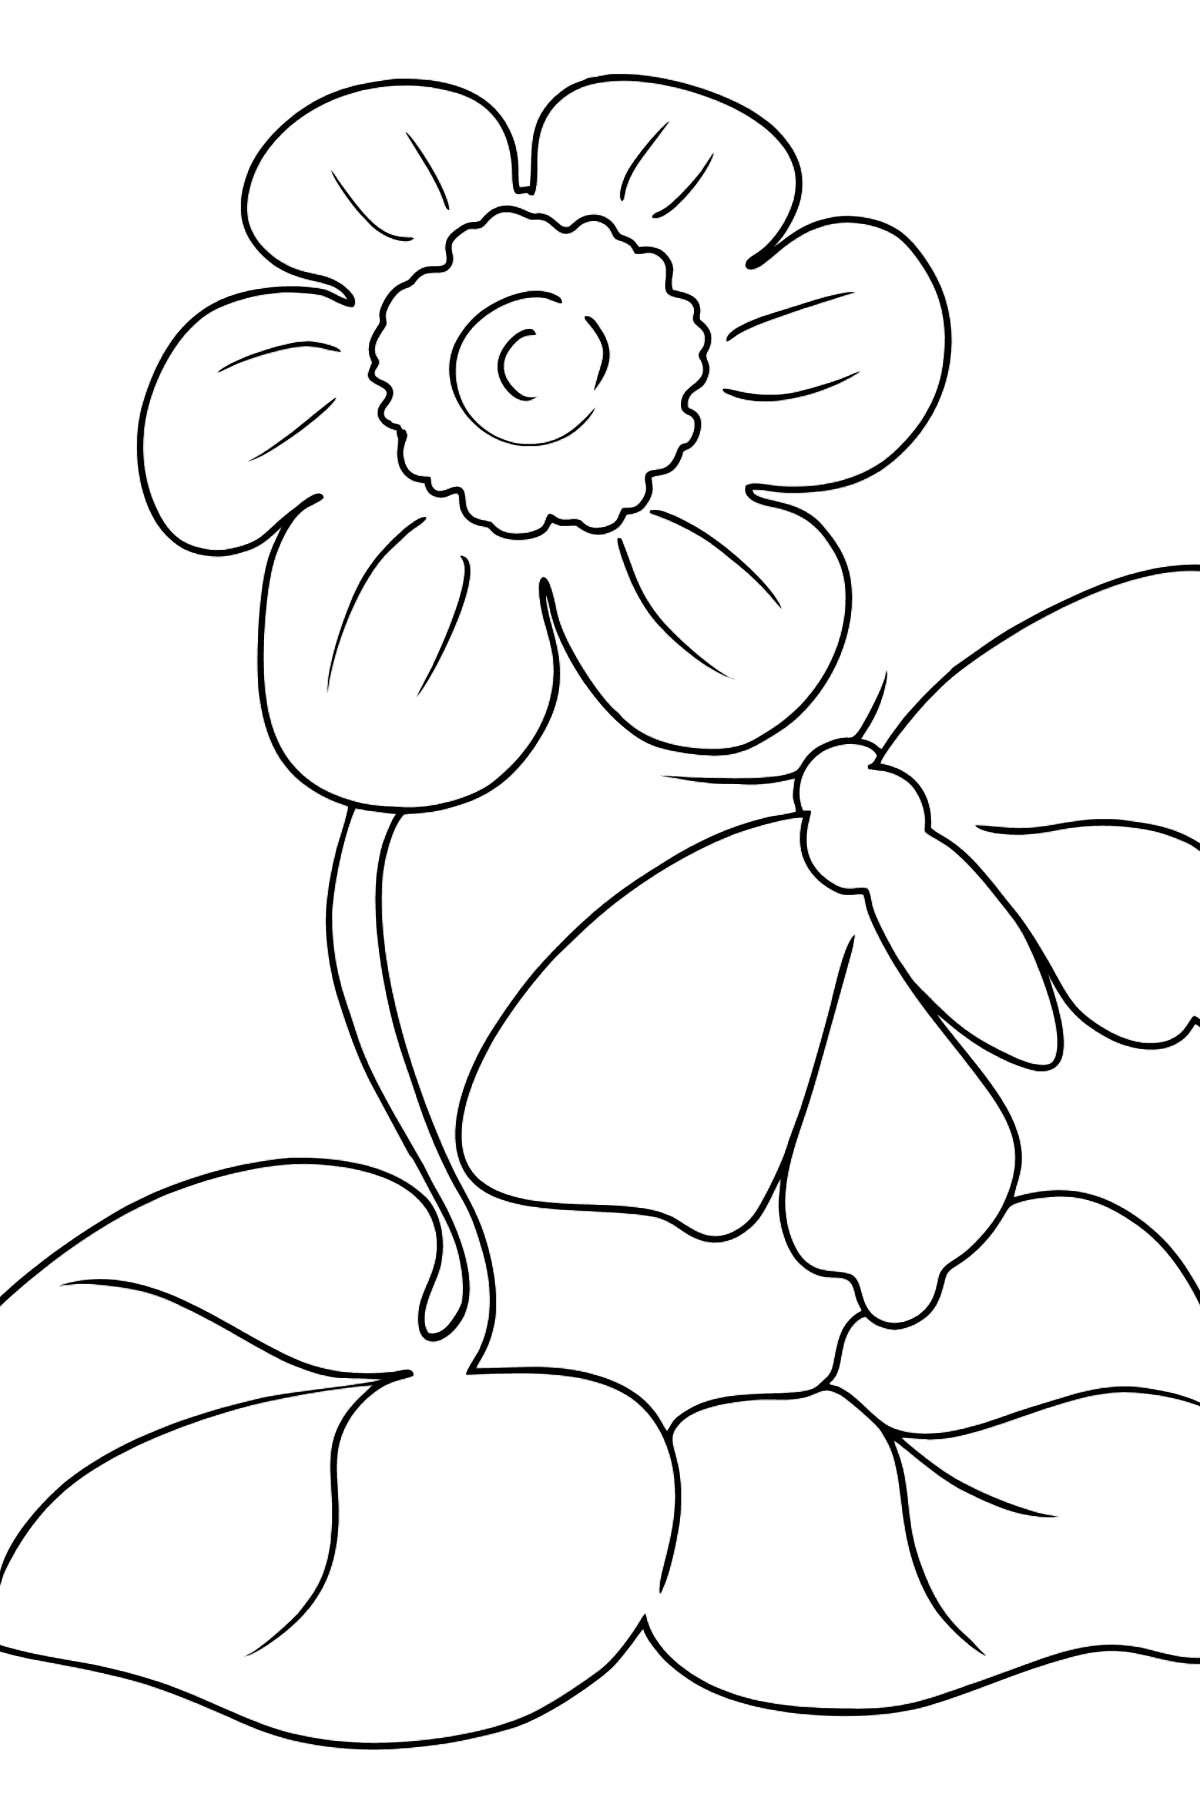 Coloring Page - flowers and butterfly - Coloring Pages for Kids